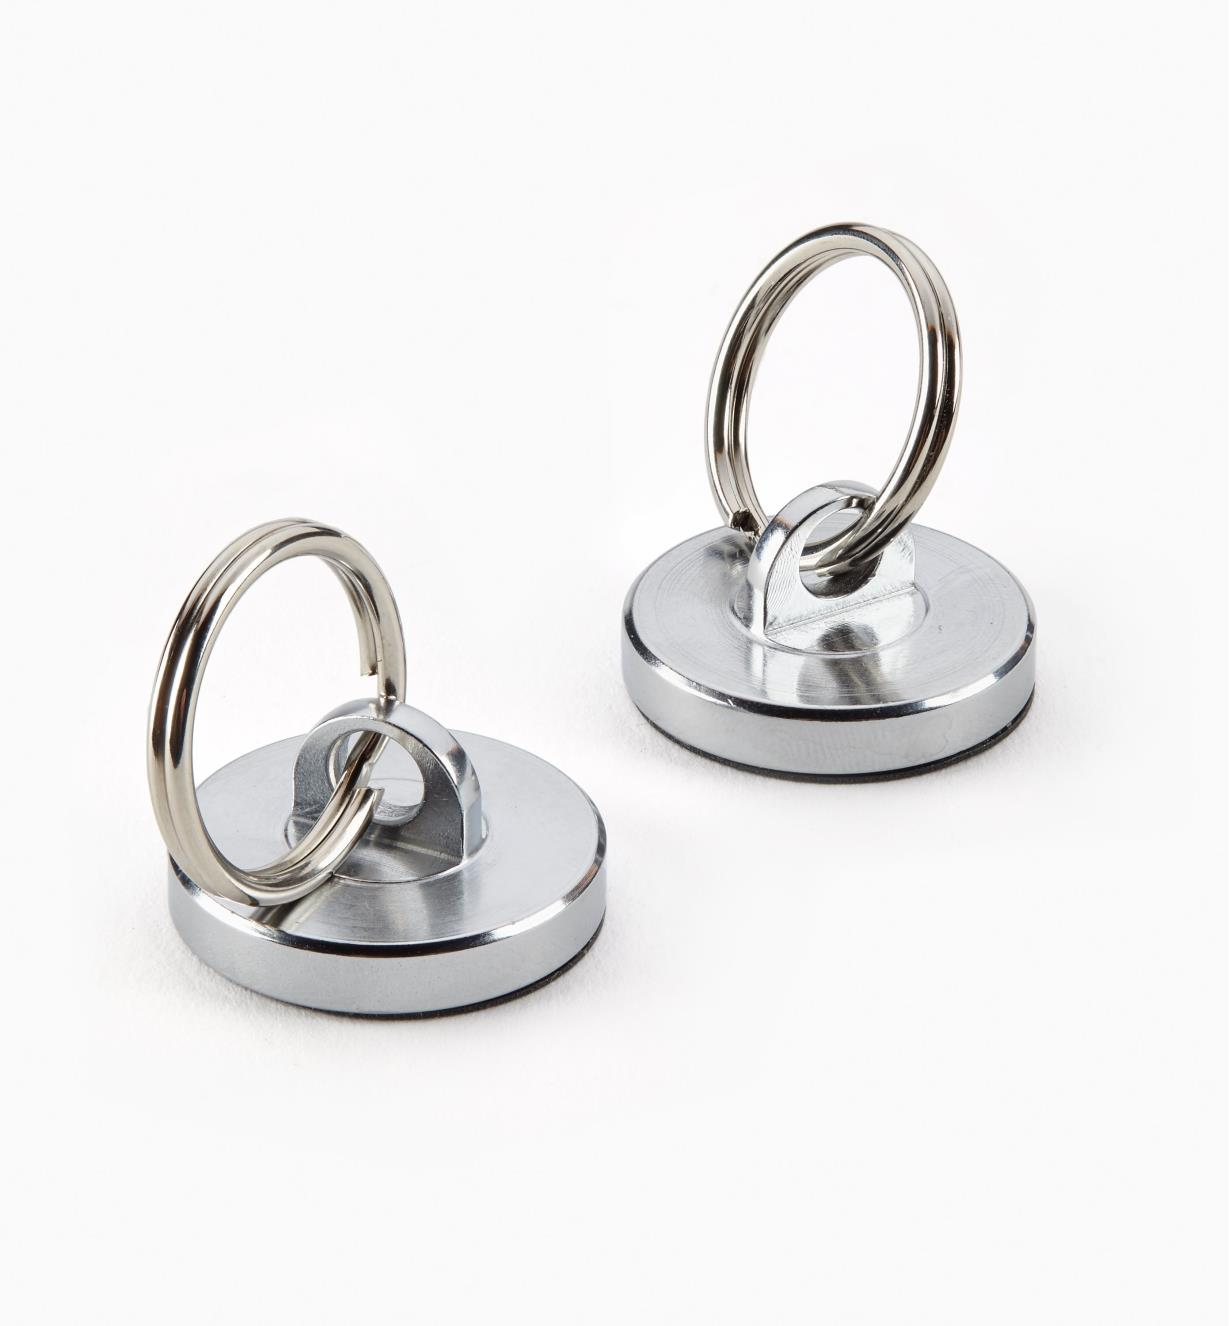 50K1502 - Magnetic Cord Holders, pair